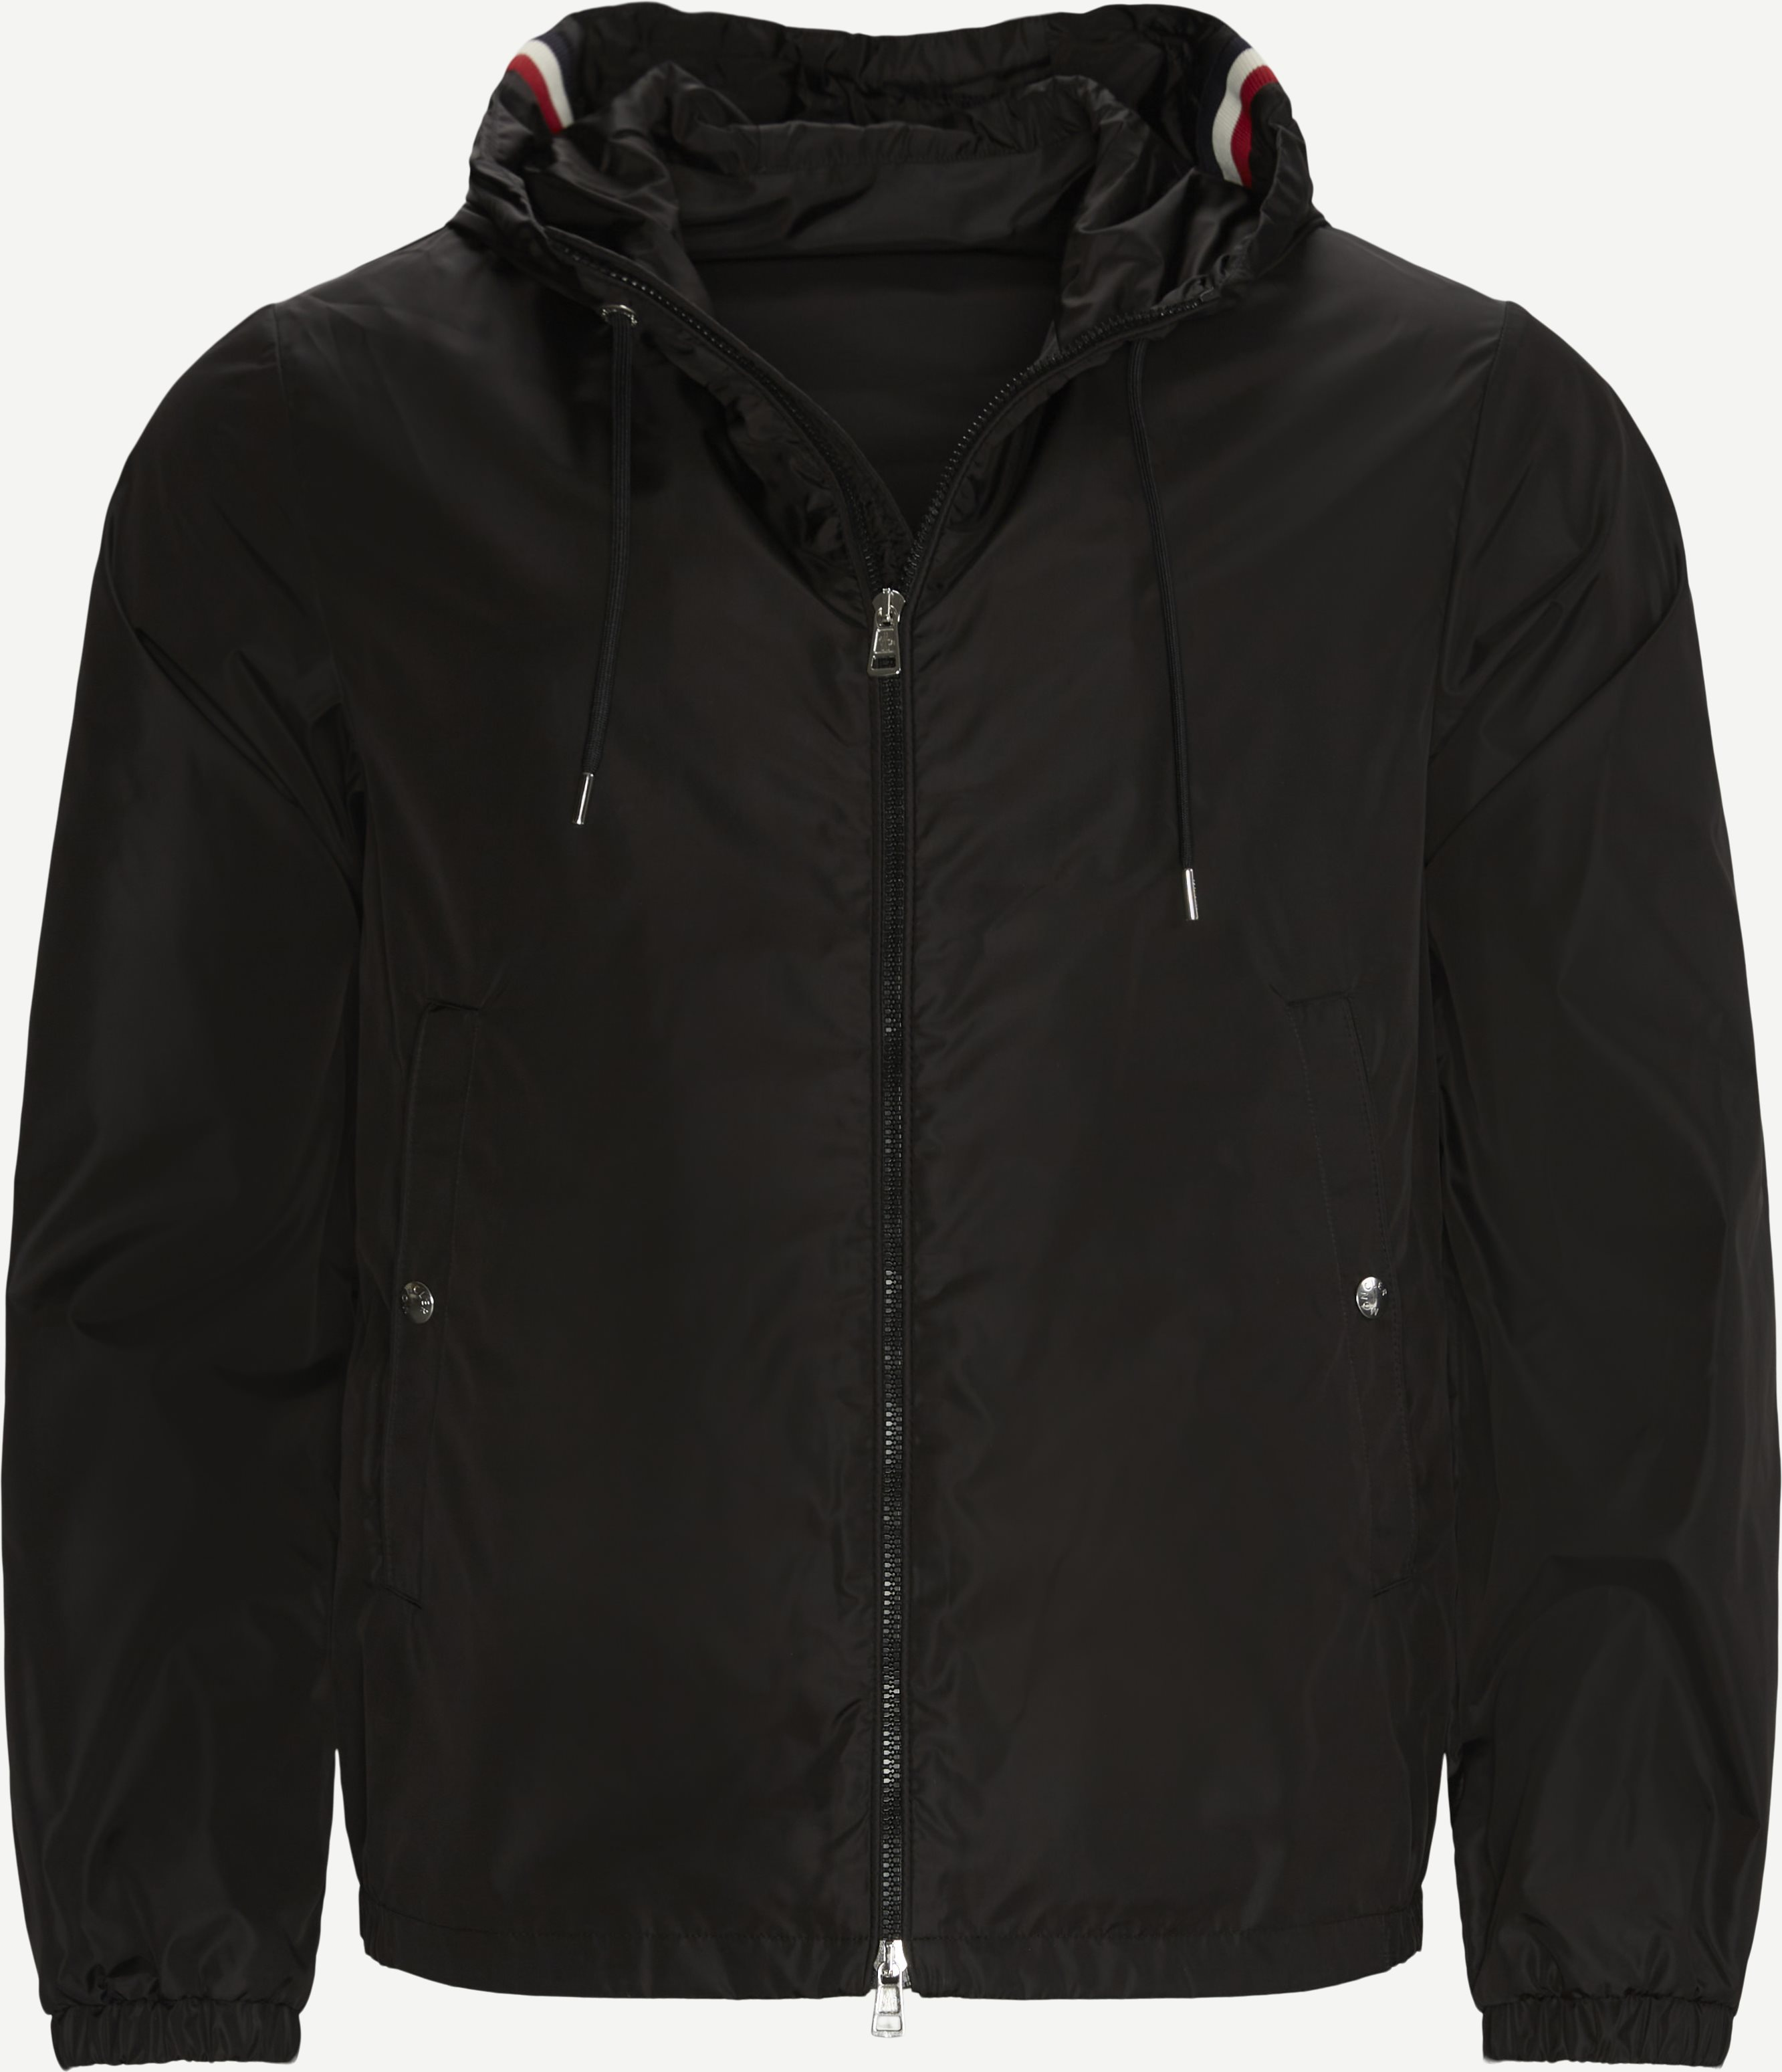 Grimpeurs Jacket - Jakker - Regular - Sort